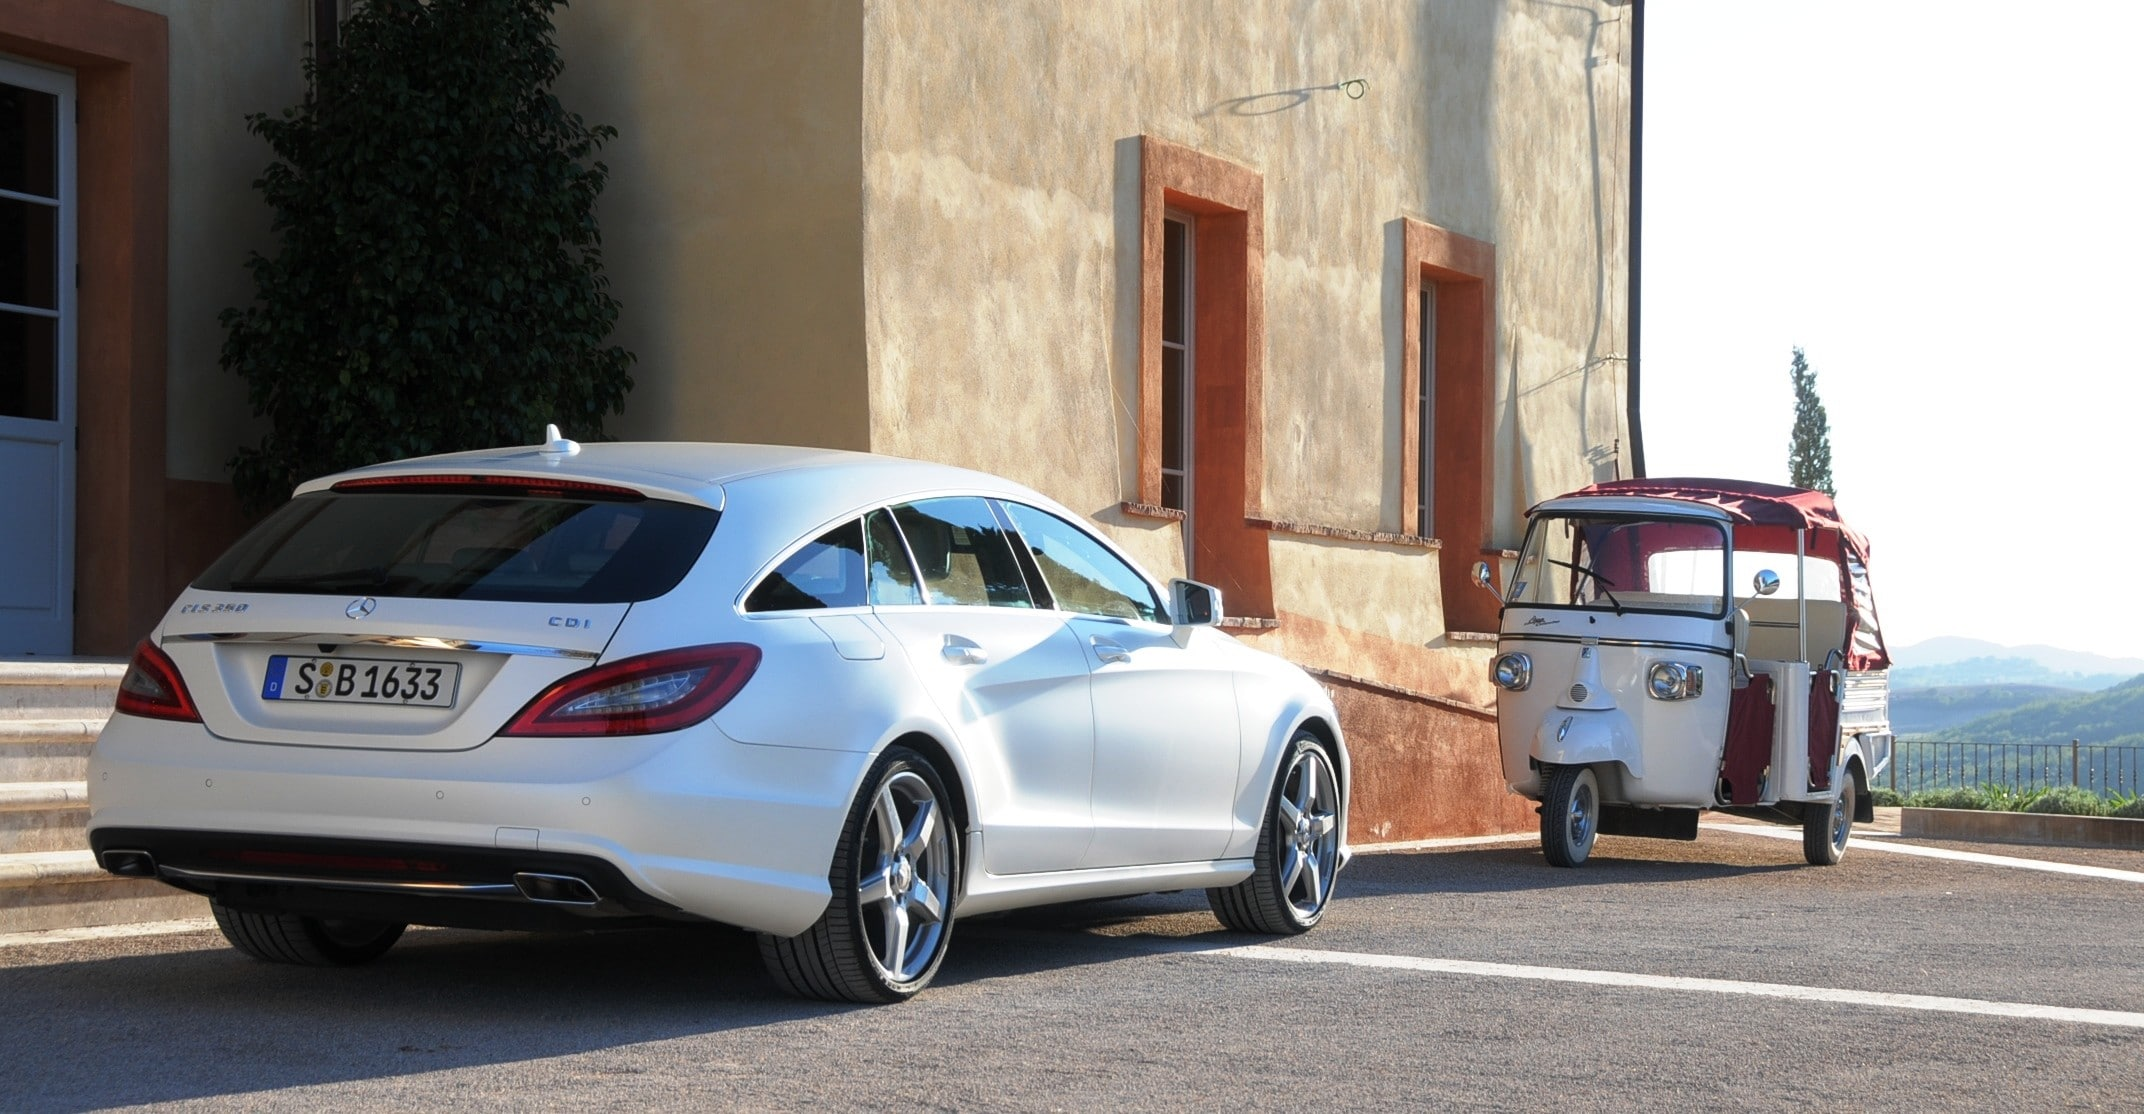 Mercedes CLS Shooting Brake 63 AMG : essai d'un break de 525 chevaux !